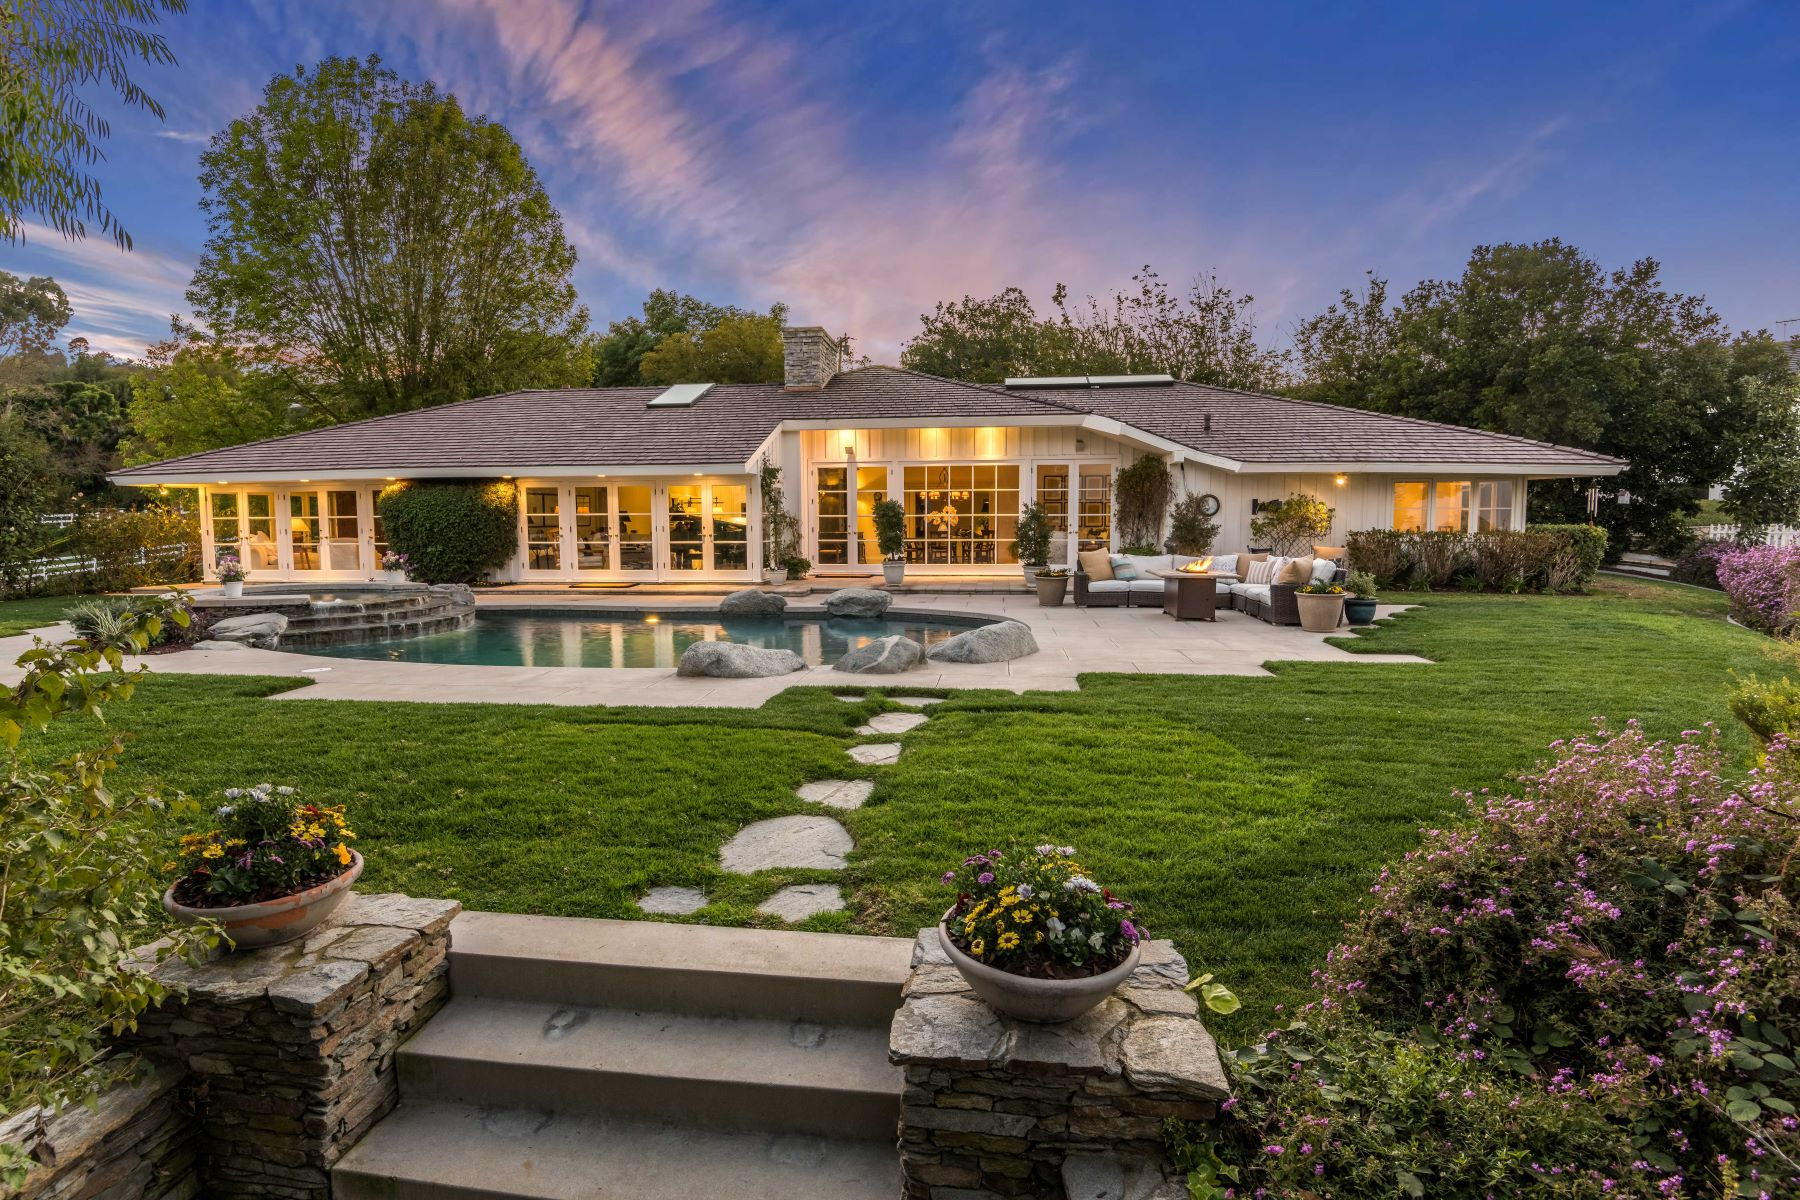 Single Family Homes for Active at 7 Chesterfield Road, Rolling Hills, CA 90274 7 Chesterfield Road Rolling Hills, California 90274 United States